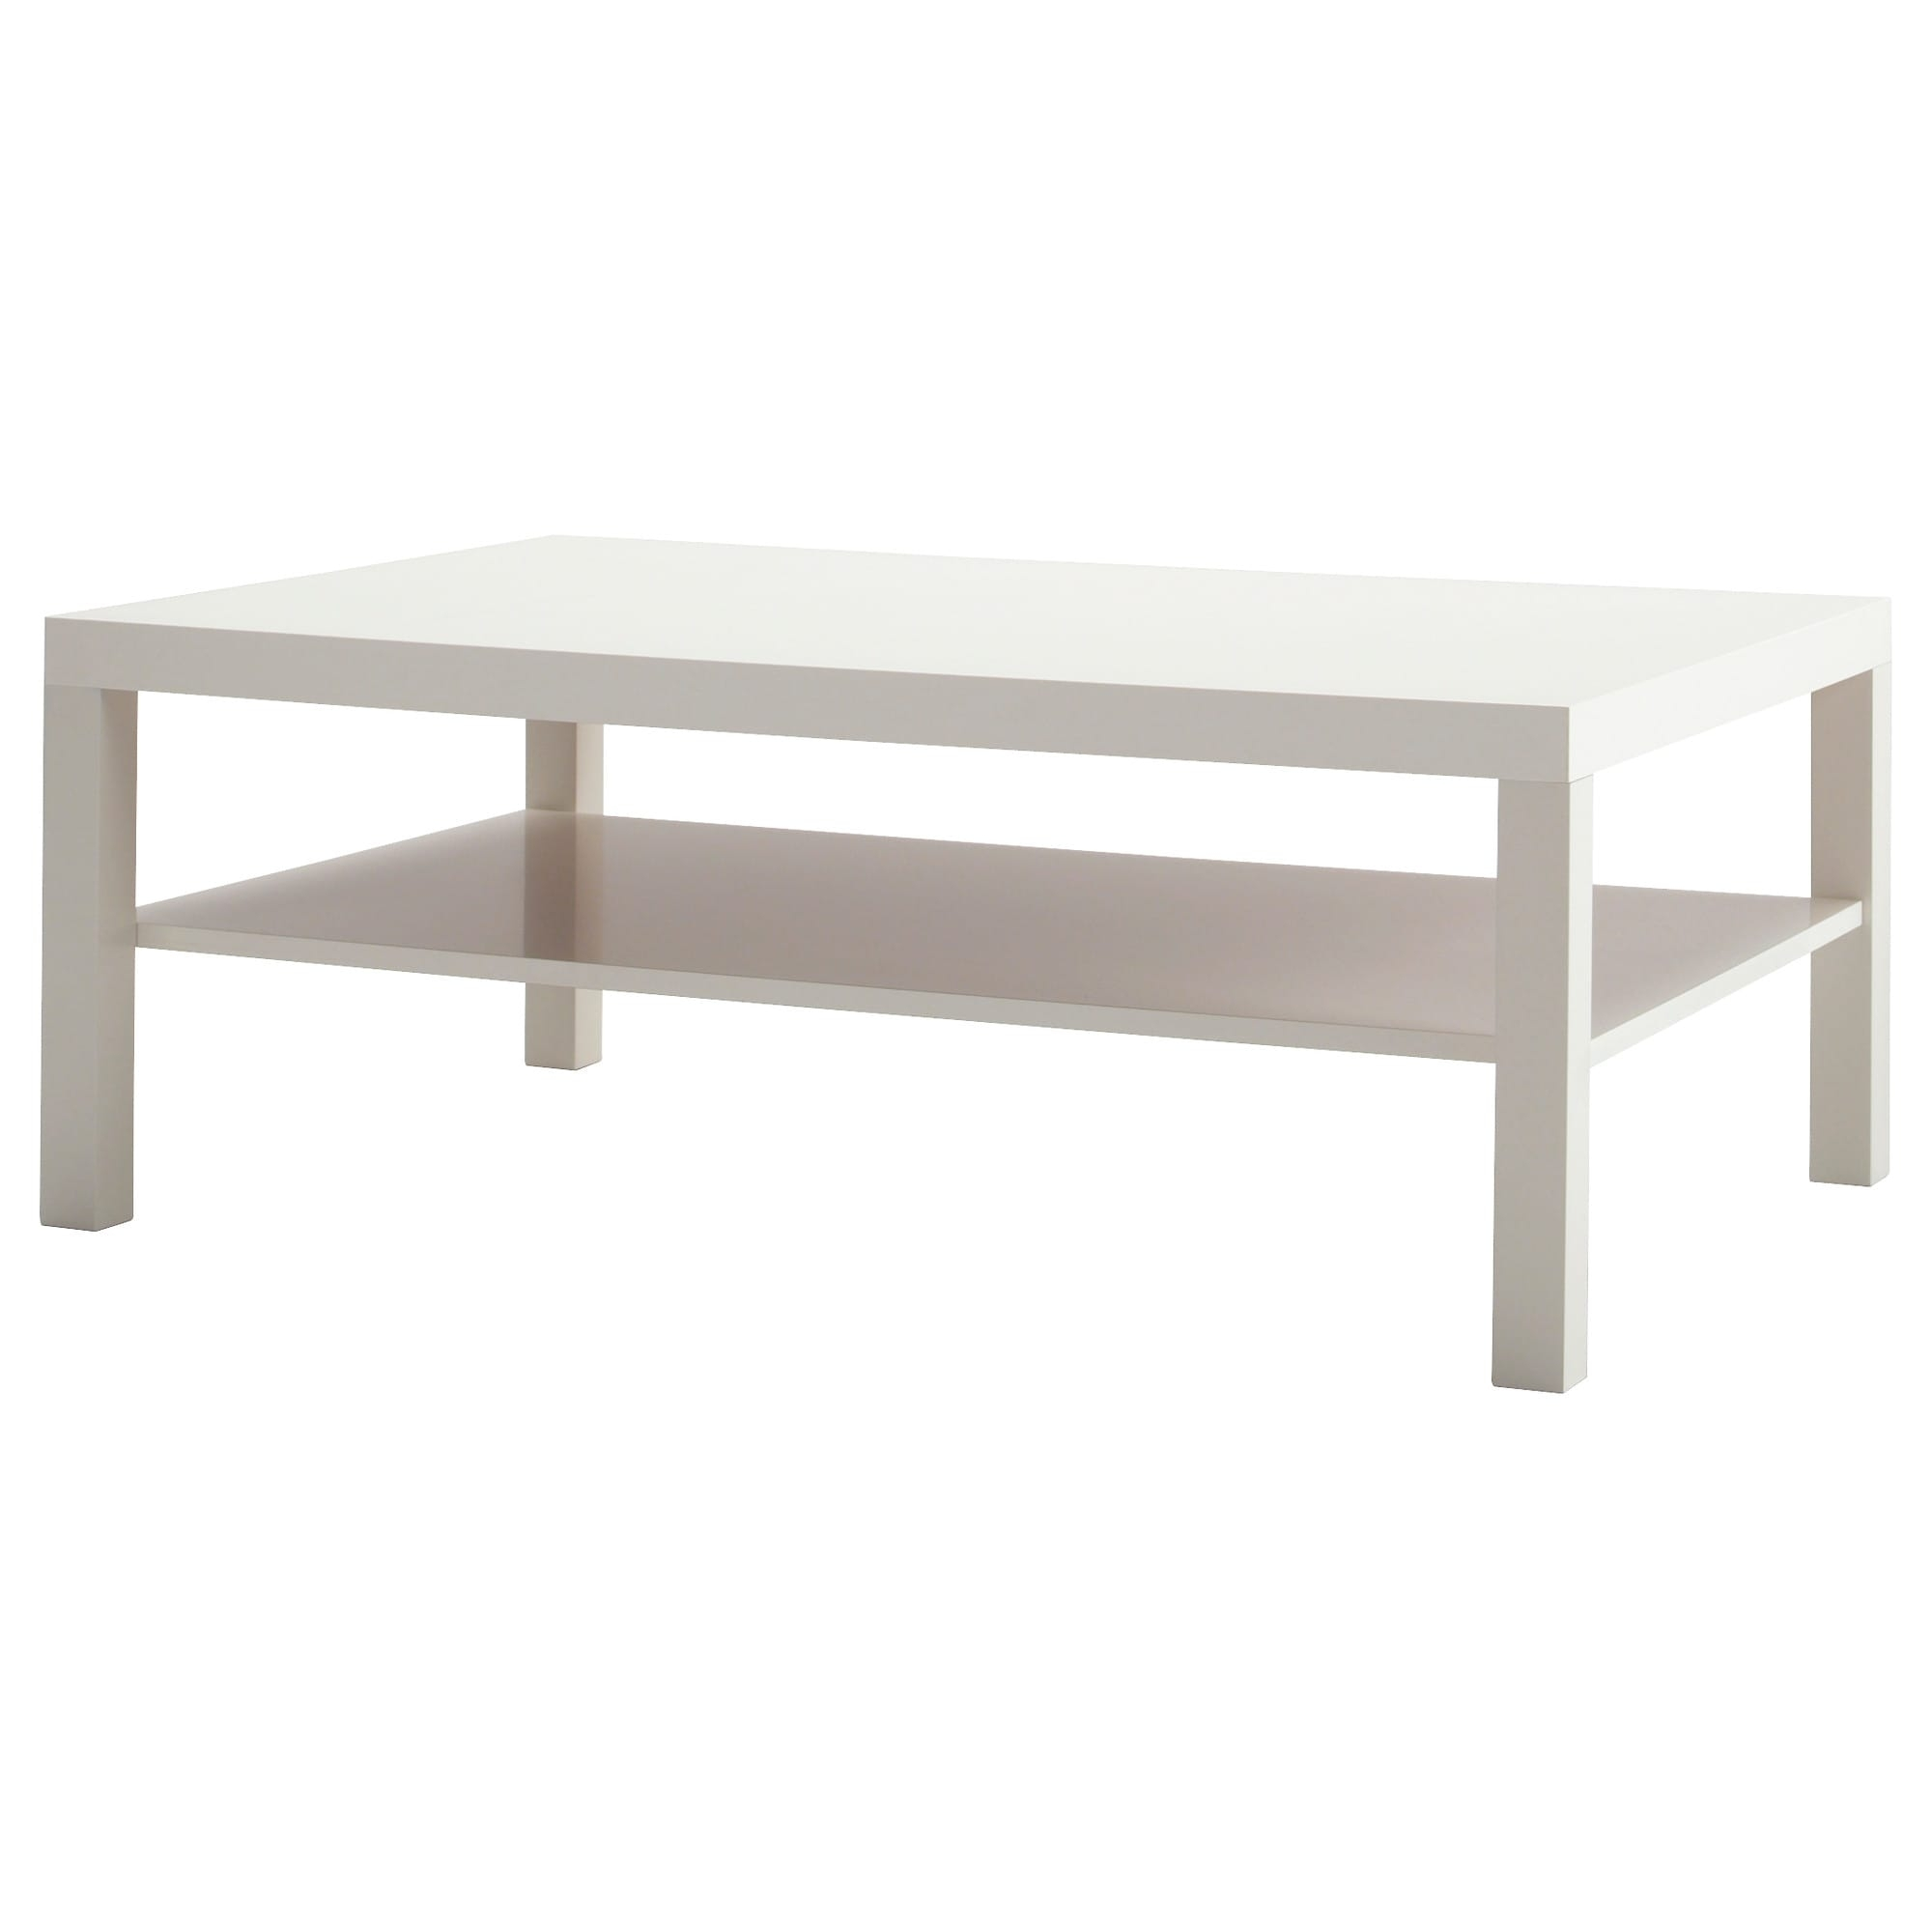 Lack Coffee Table - White - Ikea with regard to Go-Cart White Rolling Coffee Tables (Image 22 of 30)